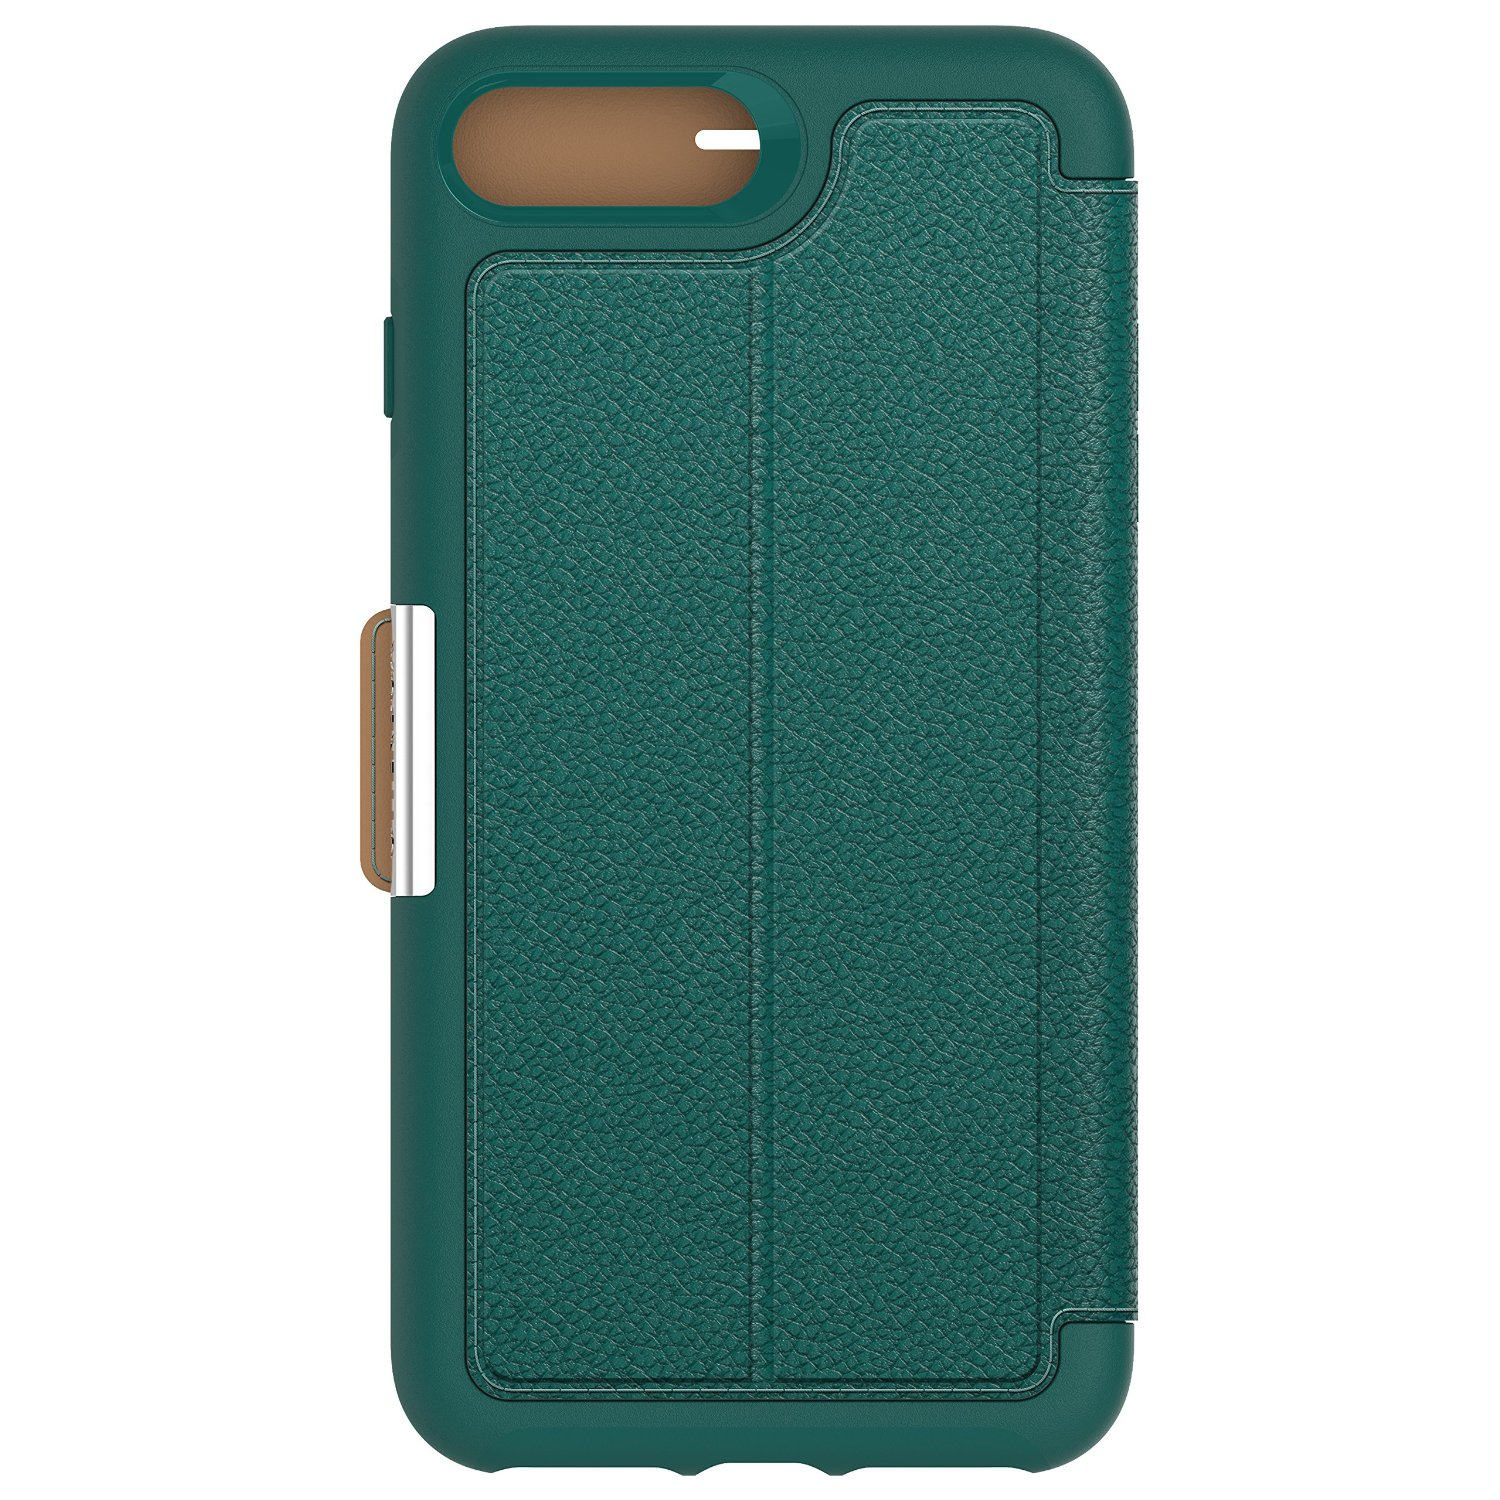 size 40 b4cfb cfd83 Details about OtterBox Strada for iPhone 7 8 Premium Leather Folio Case  Genuine All Colours PS